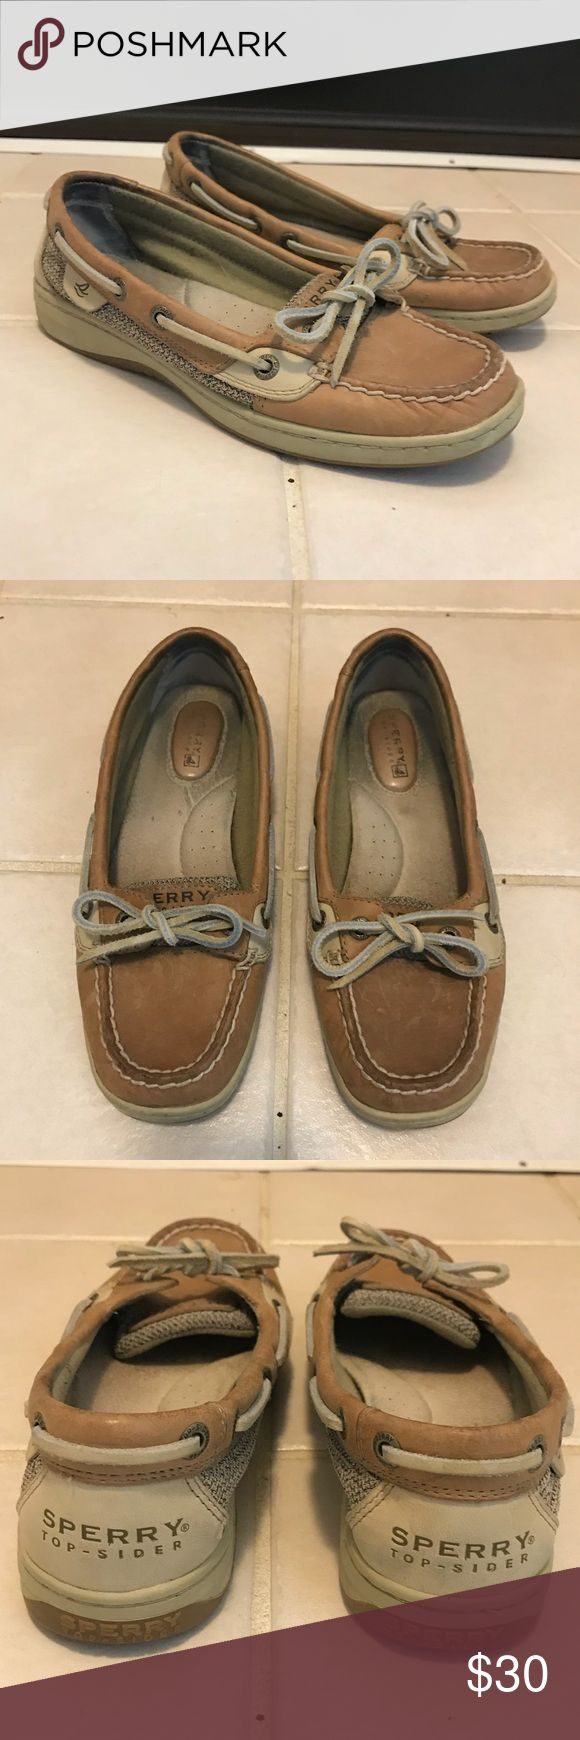 """Sperry Angelfish Boat Shoe I'm selling these """"linen oat"""" boat shoes by Sperry after wearing them a handful of times because they are too tight on me.  They're in excellent condition with wear on the inside of the shoe.  They're a size 5 and can fit 5.5-6. Sperry Top-Sider Shoes Flats & Loafers"""